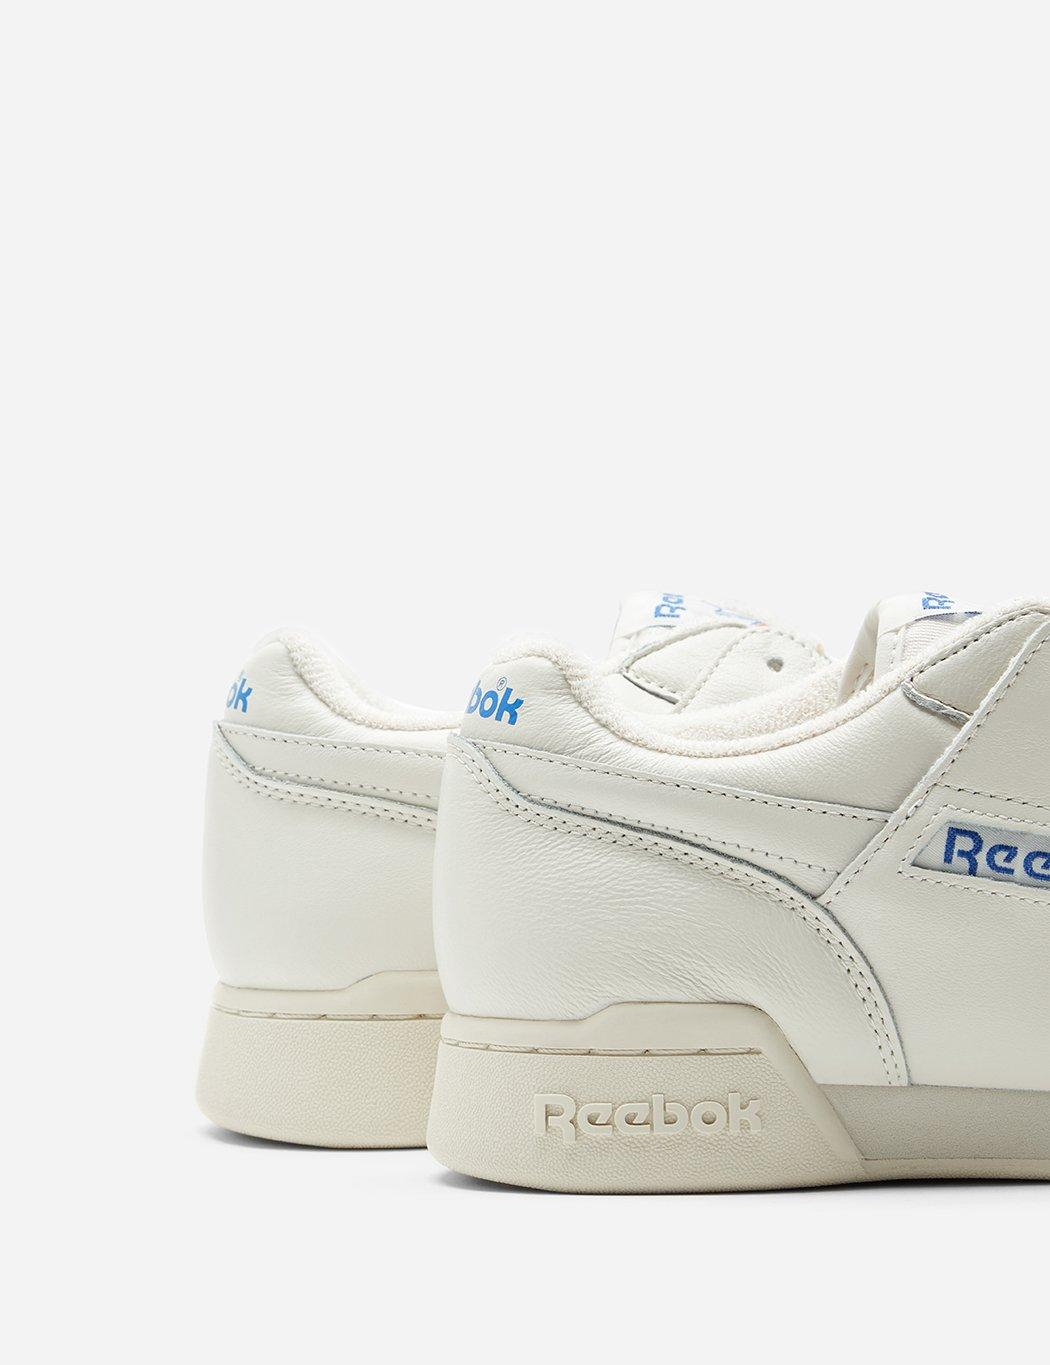 bda7004d45f Lyst - Reebok Workout Plus 1987 Tv (dv6435) in White for Men